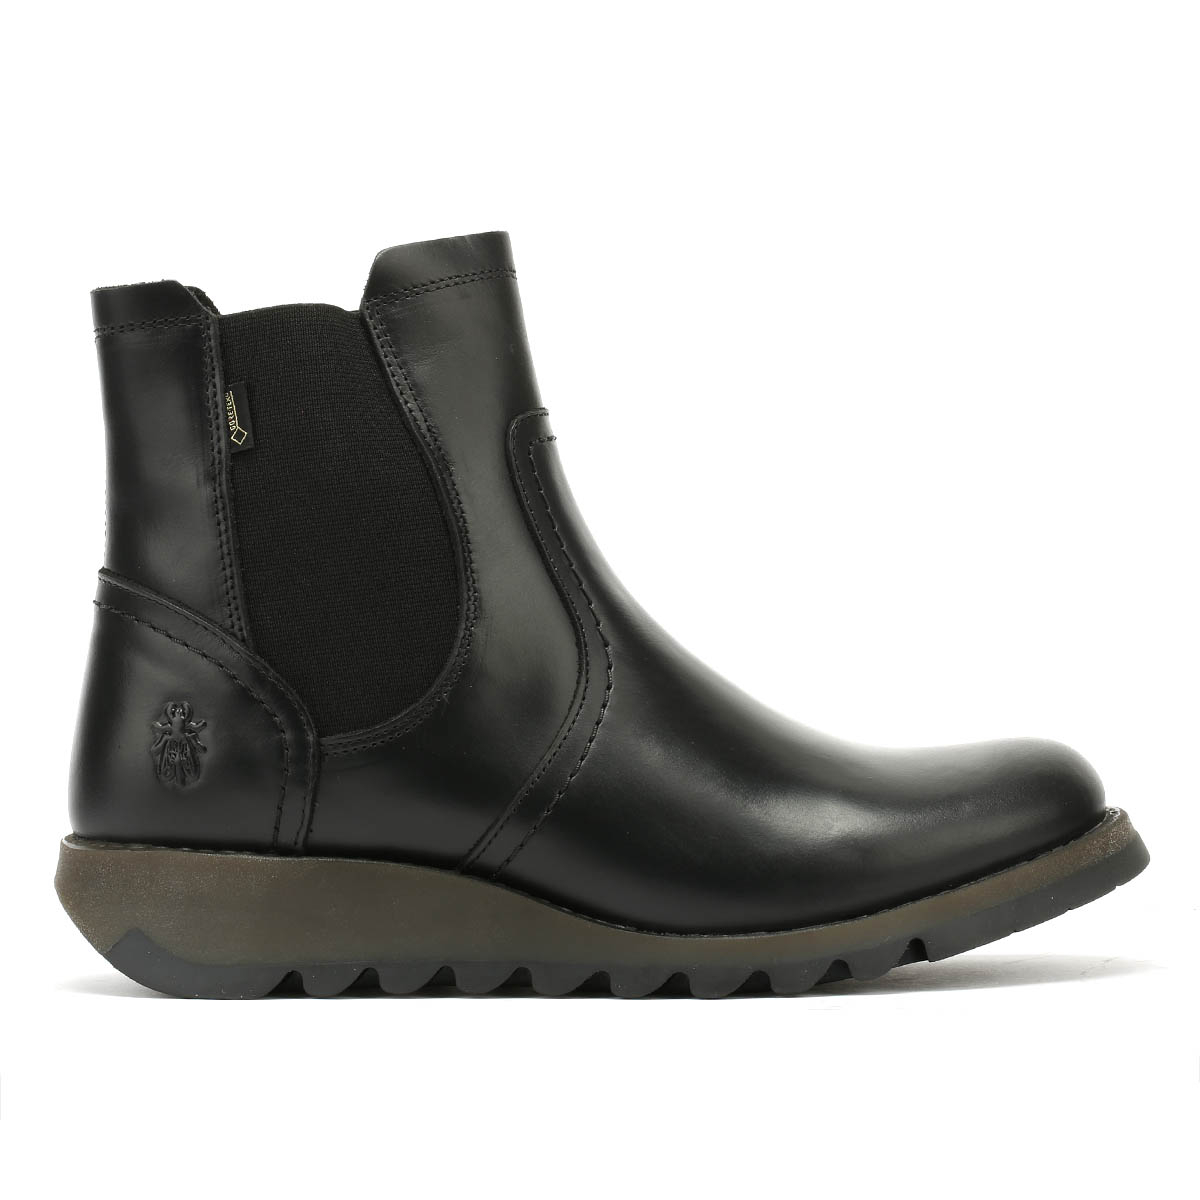 Fly-London-Womens-Boots-Black-Scon-Rug-Ladies-Leather-Winter-Ankle-Shoes thumbnail 4